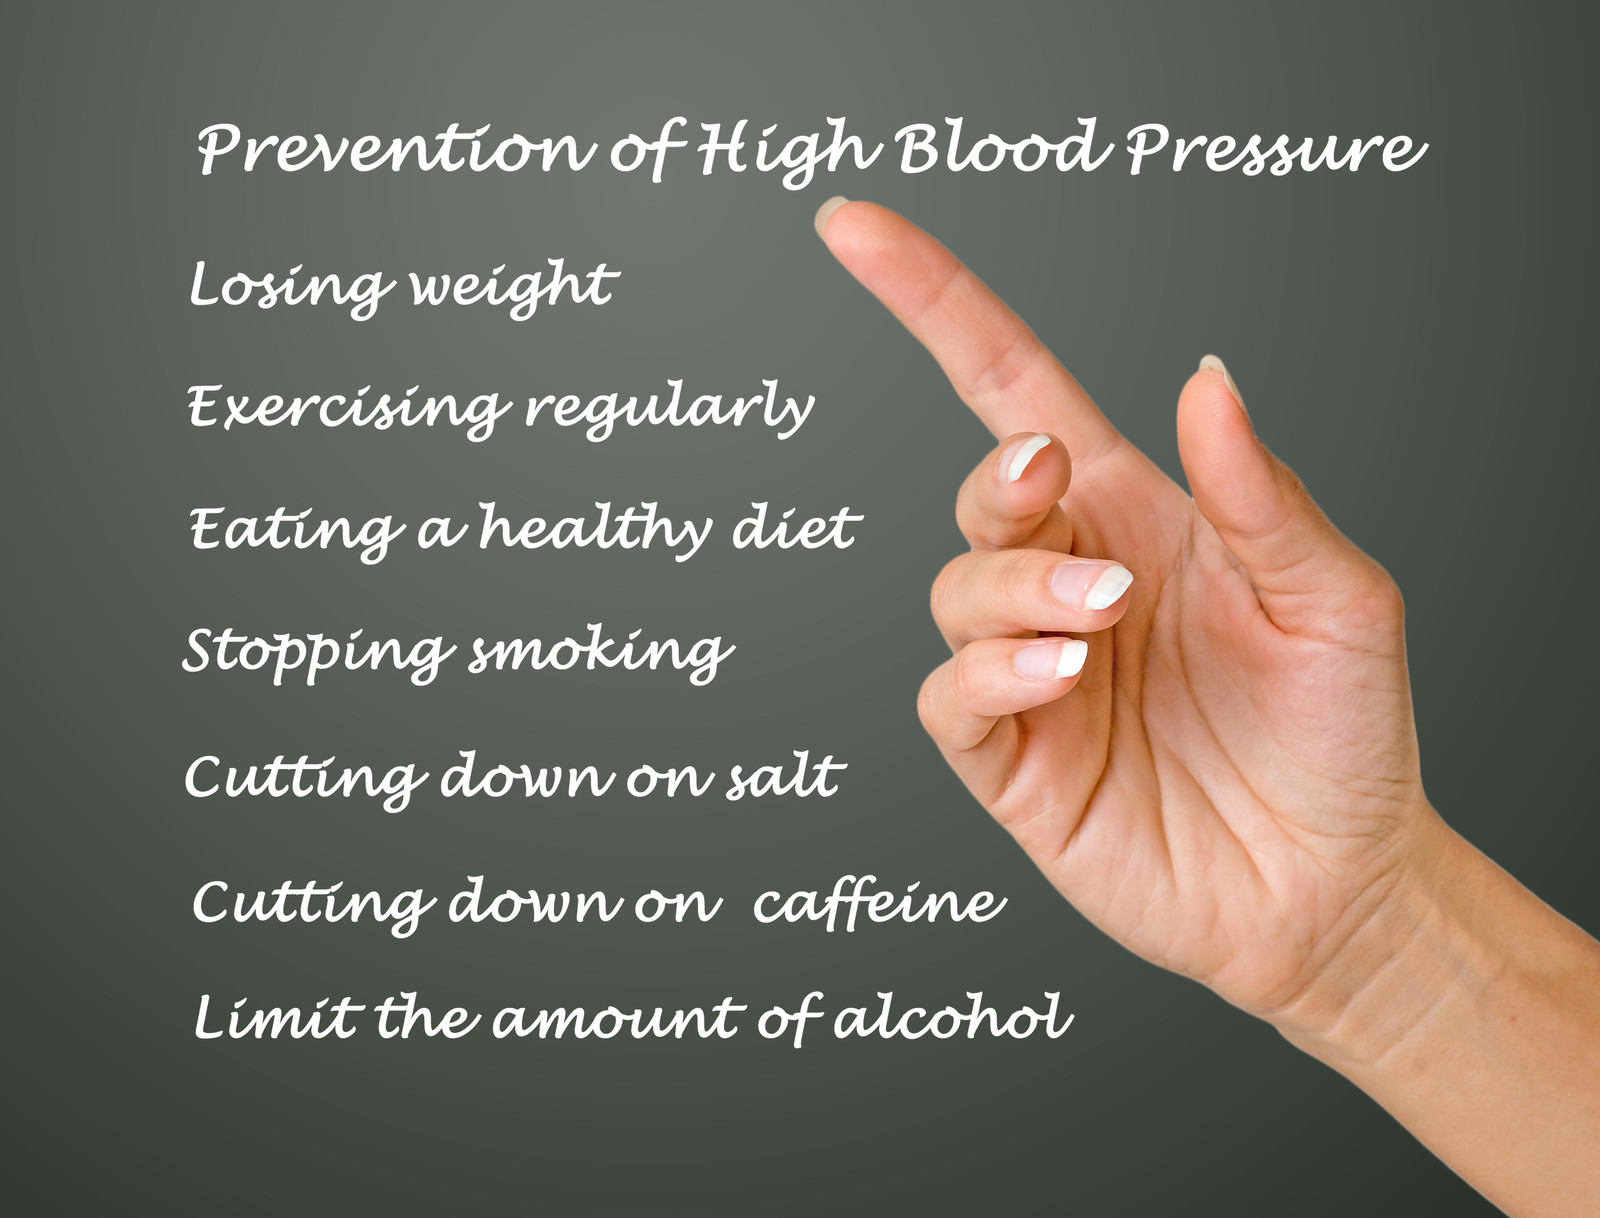 6 Ways for Baby Boomers to Beat High Blood Pressure